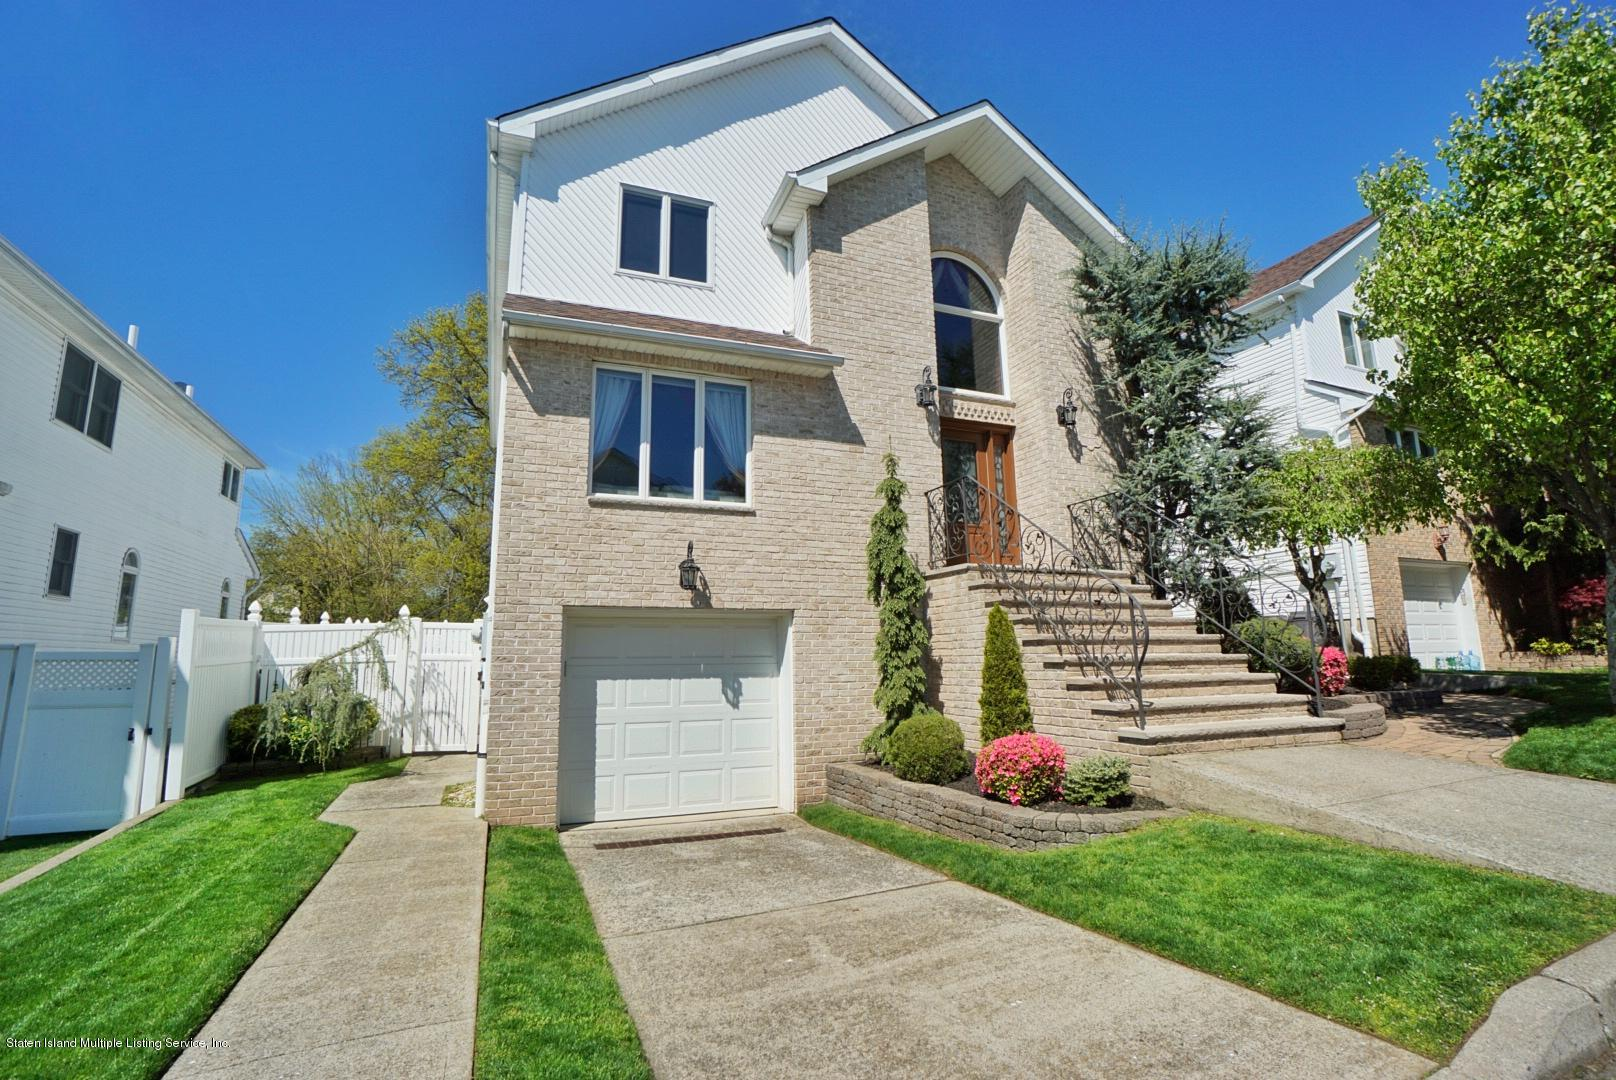 Two Family - Detached 26 Delia Court  Staten Island, NY 10307, MLS-1136800-2